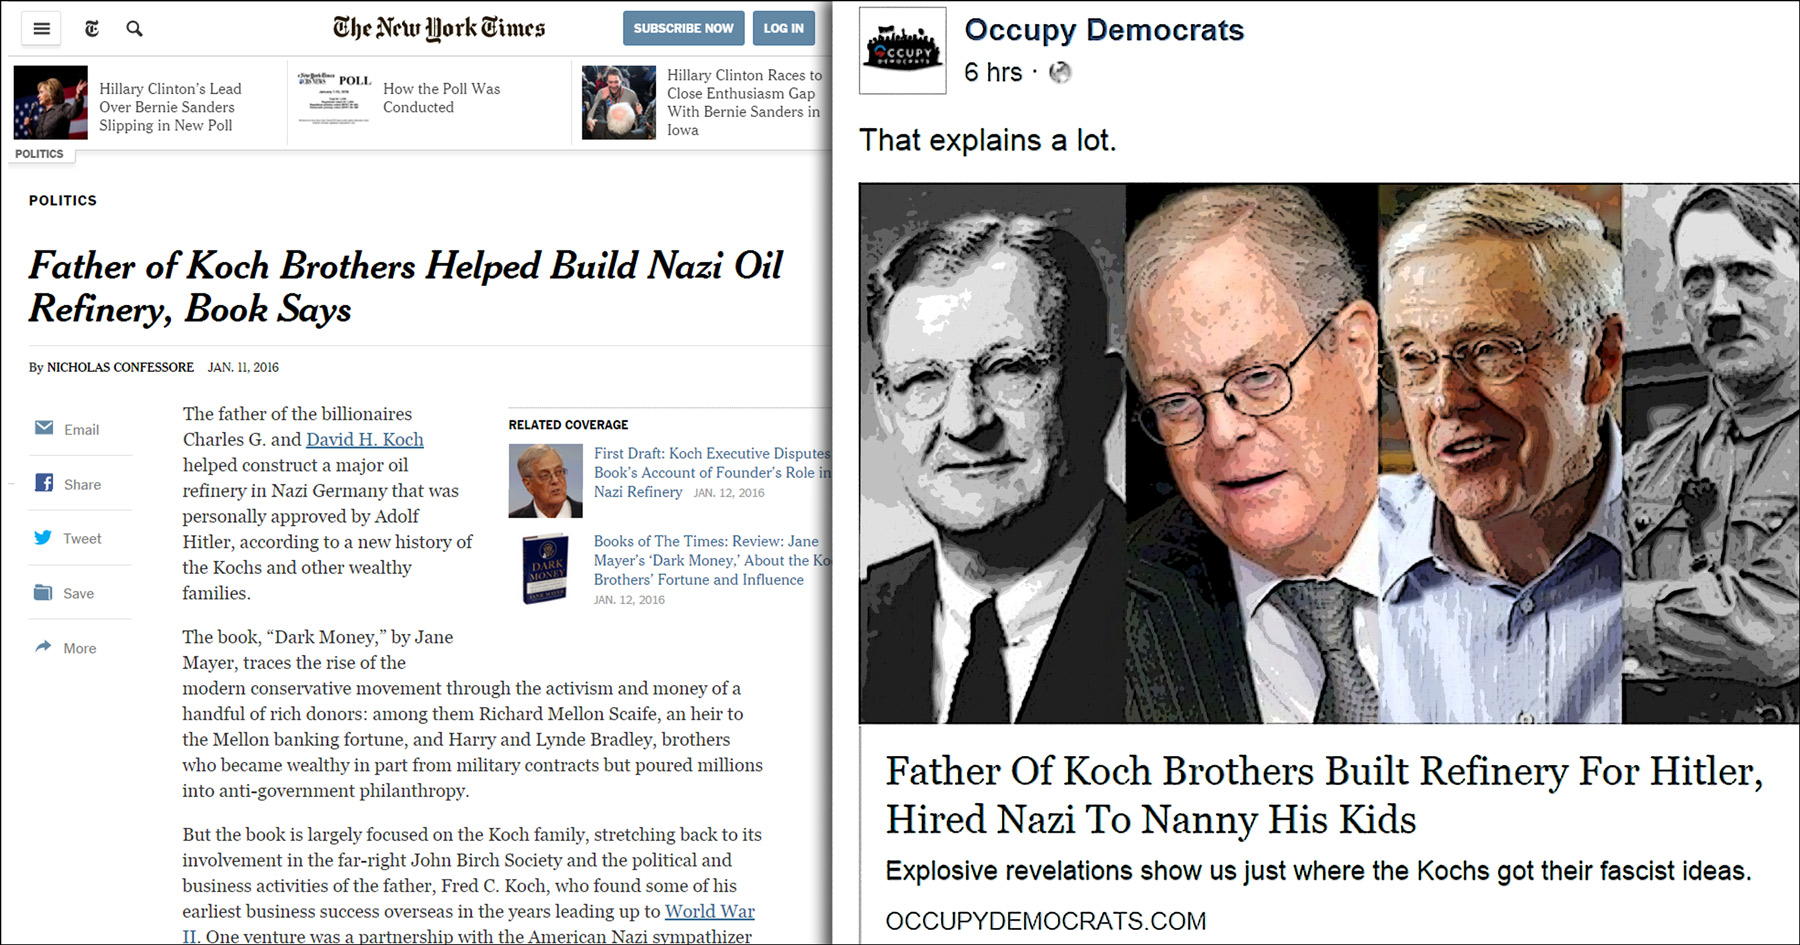 Koch brothers, Nazi, New York Times, shame, Common Sense, illustration